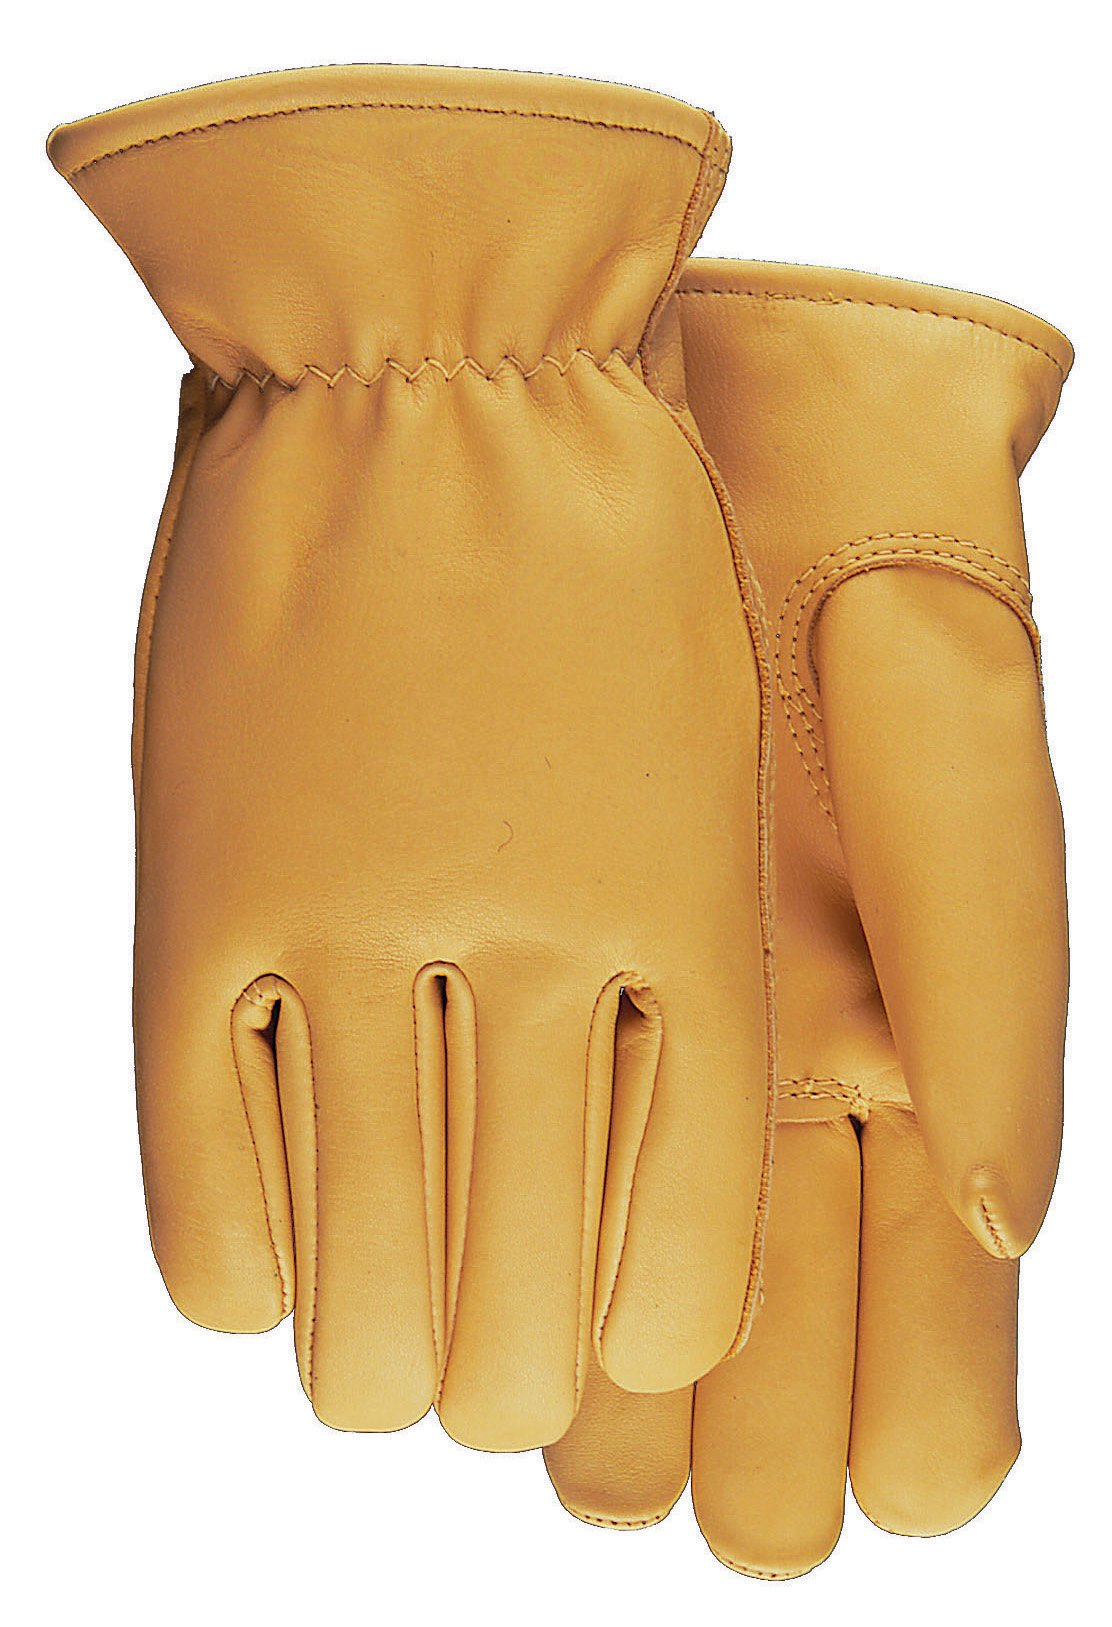 American Made Top Grain Cowhide Leather Work Gloves , 688, Size: Large by Midwest Gloves & Gear